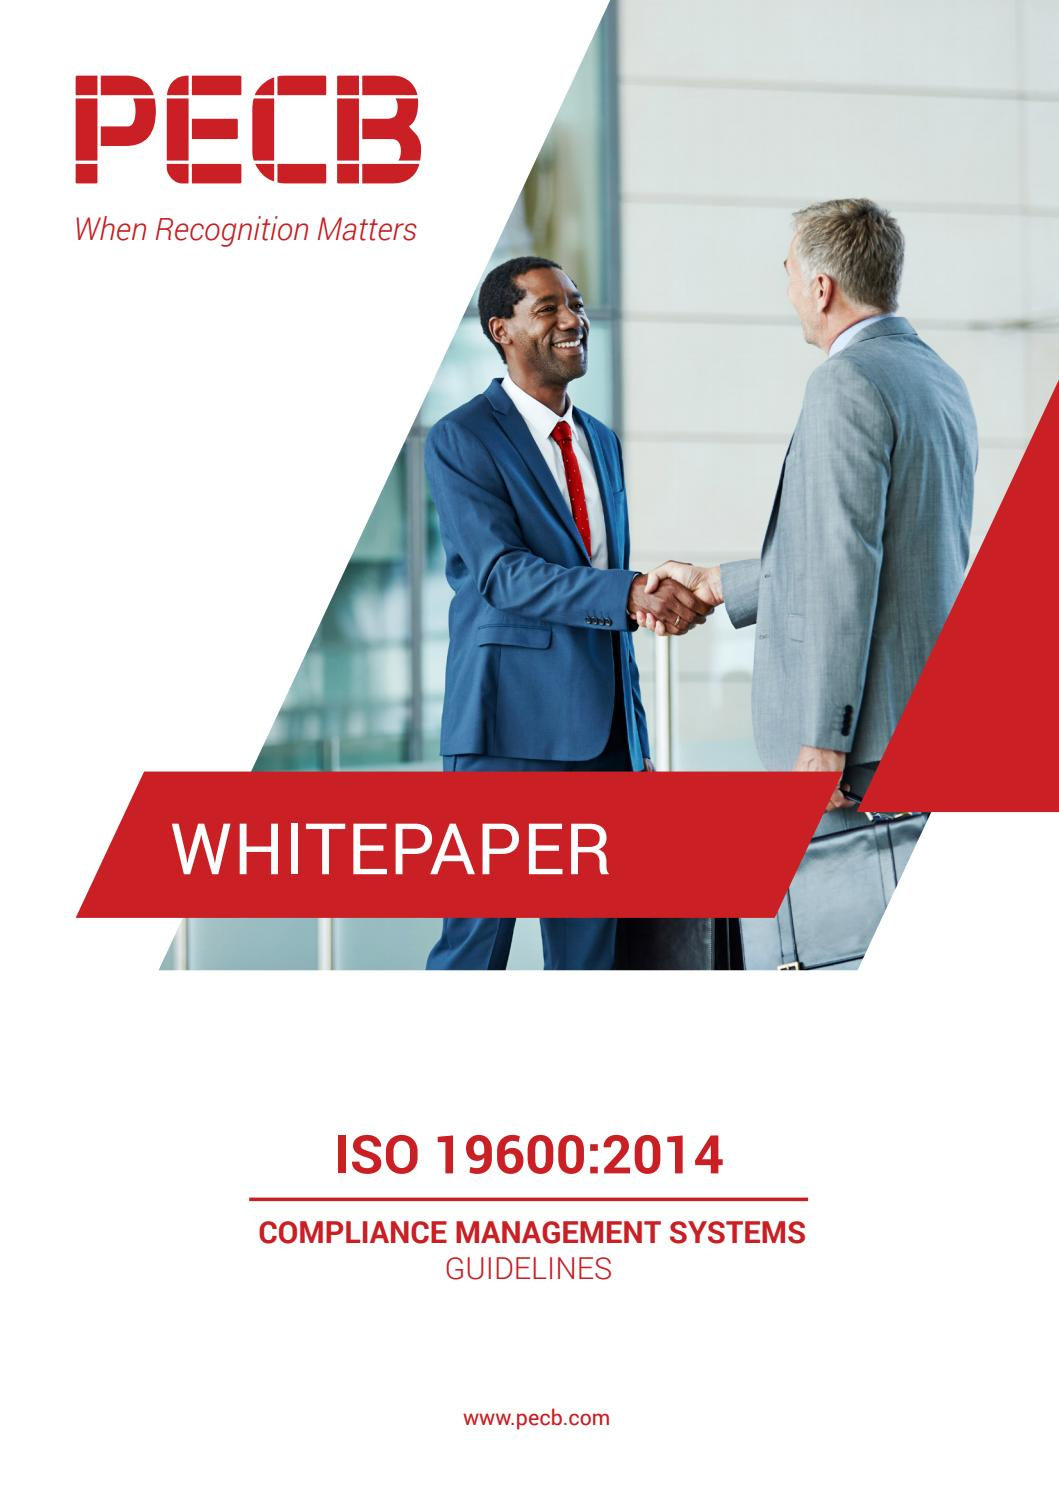 ISO 196002014 Compliance Management Systems Guidelines